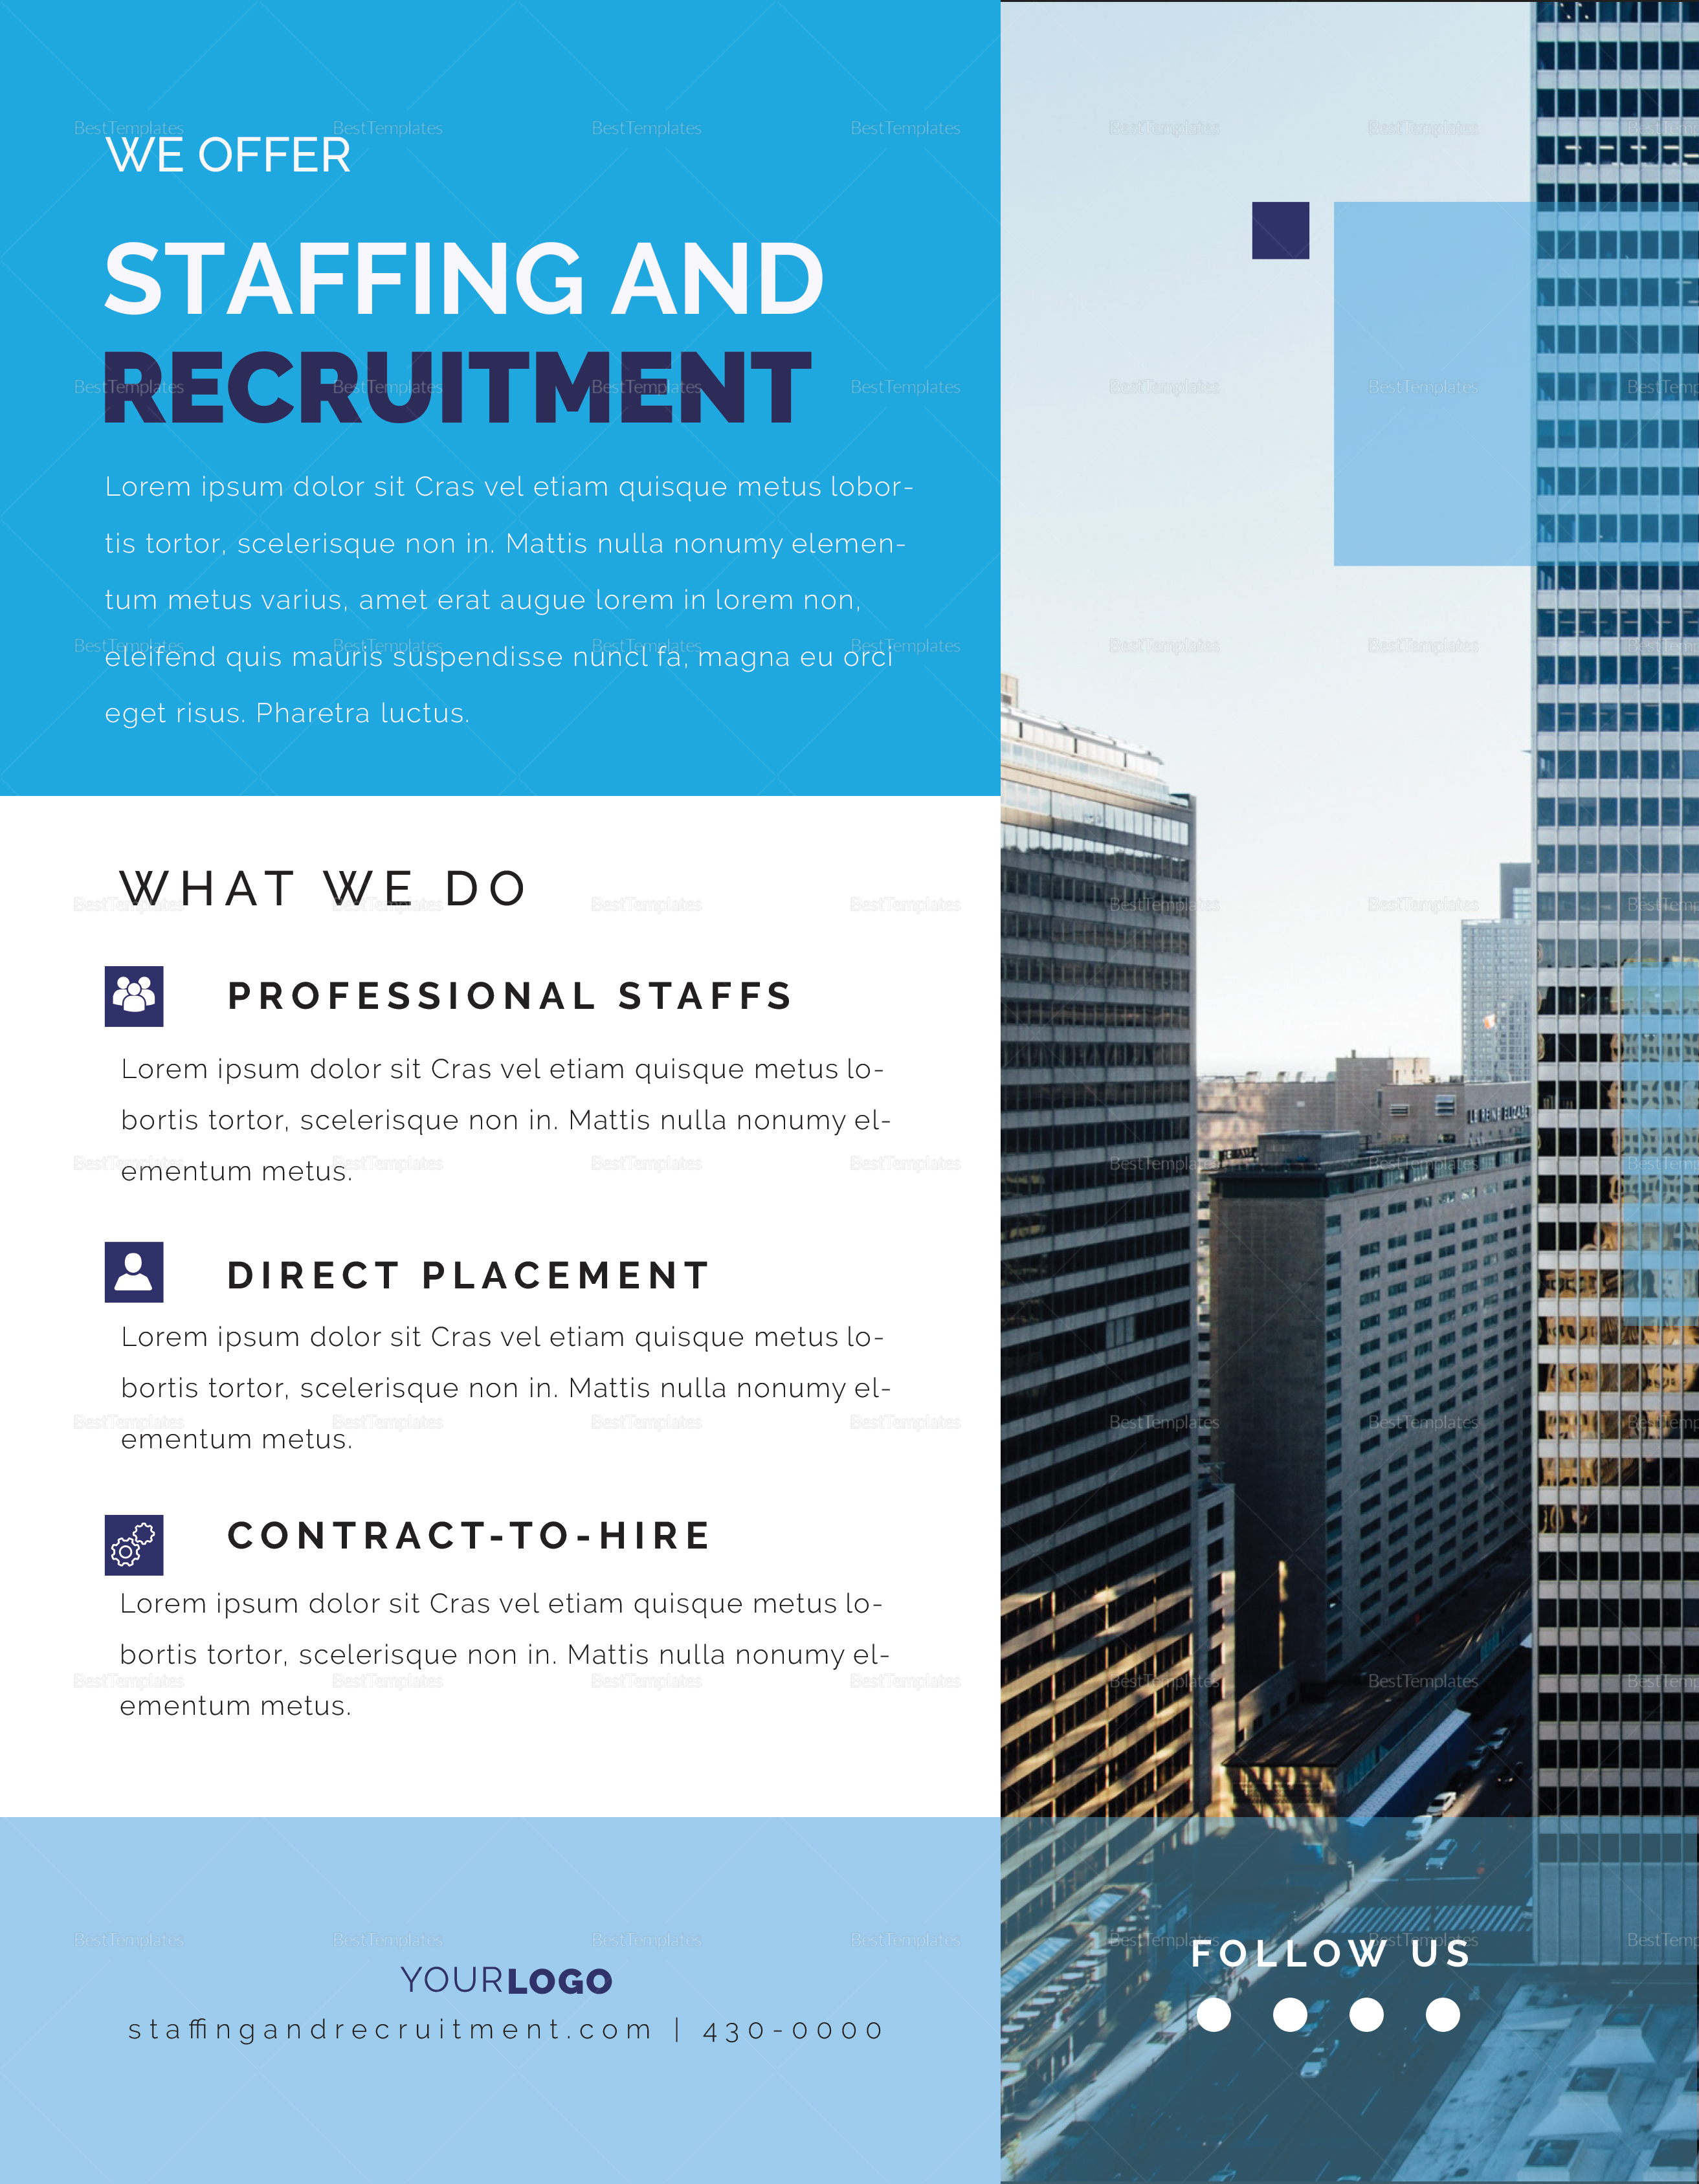 staffing and recruitment flyer design template in psd, word